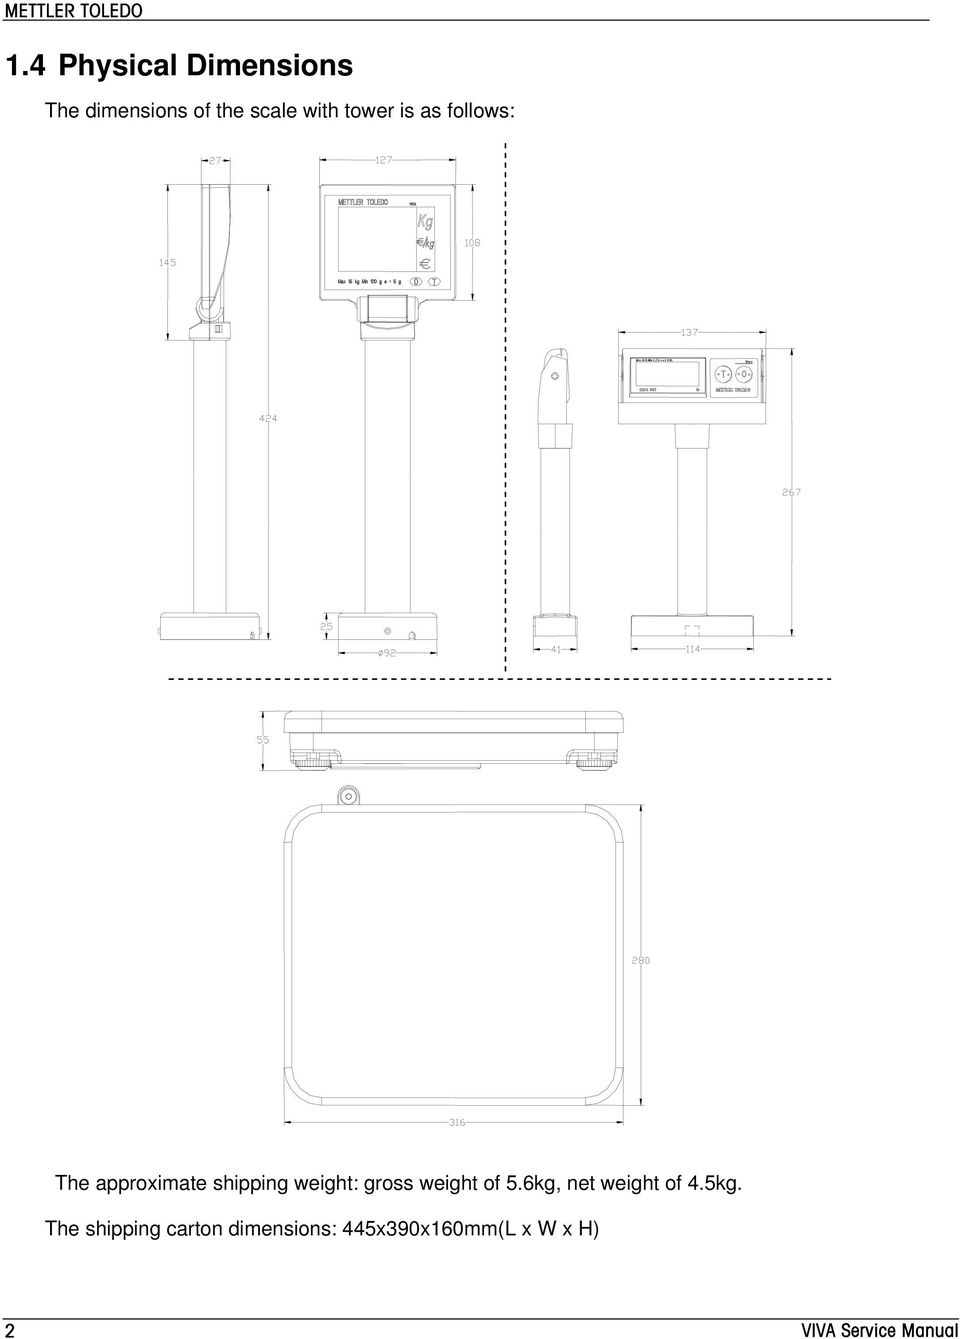 medium resolution of  weight value configuration its contents package names contents page nefton technologies categories mettler toledo ind570 user manual pdf download